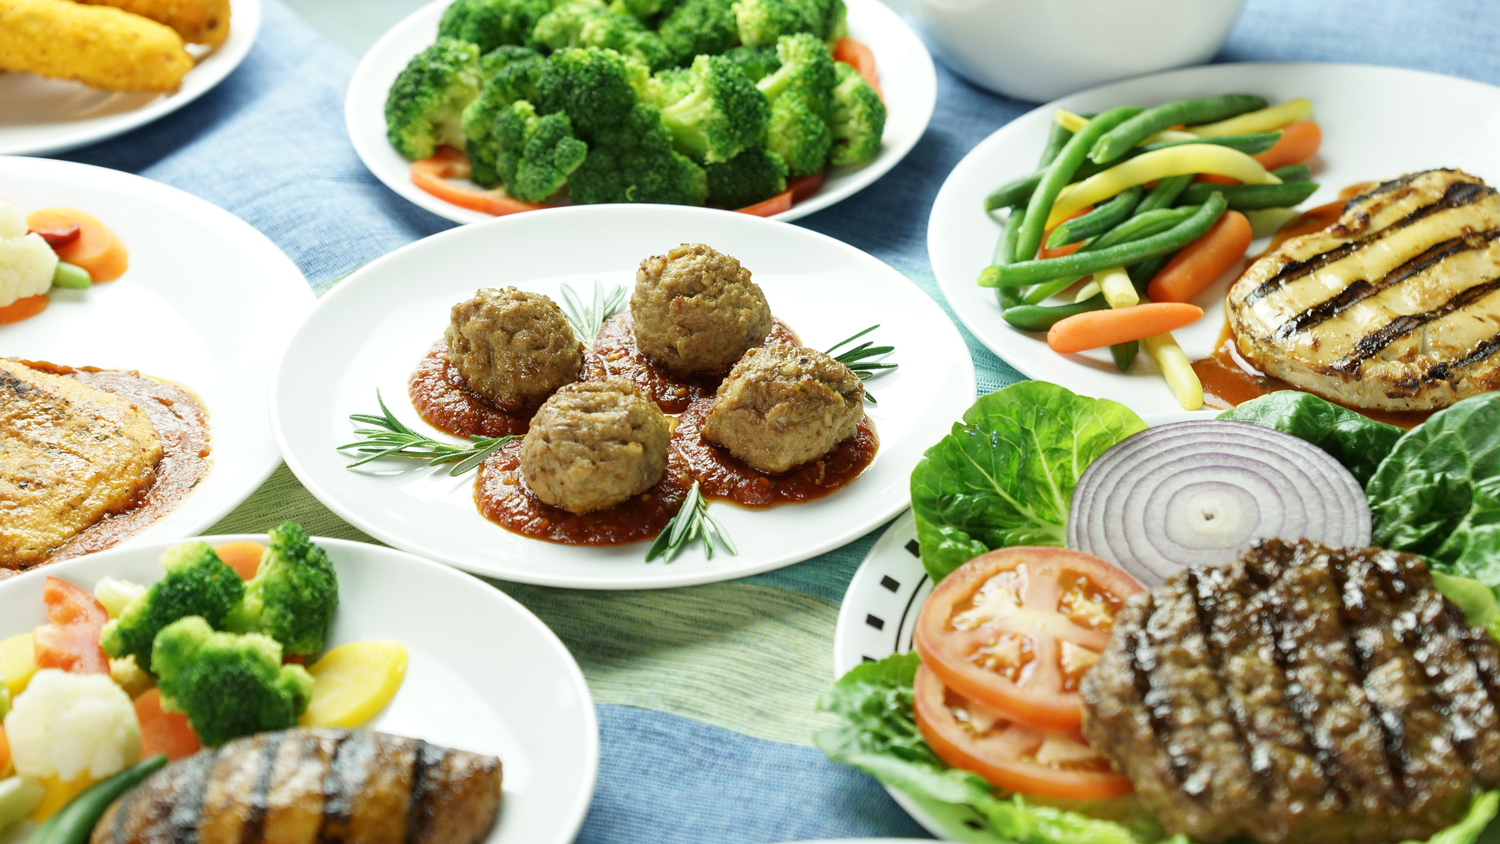 28-Day Rev! Weight Loss Meal Program - Includes Breakfast, Lunch ...